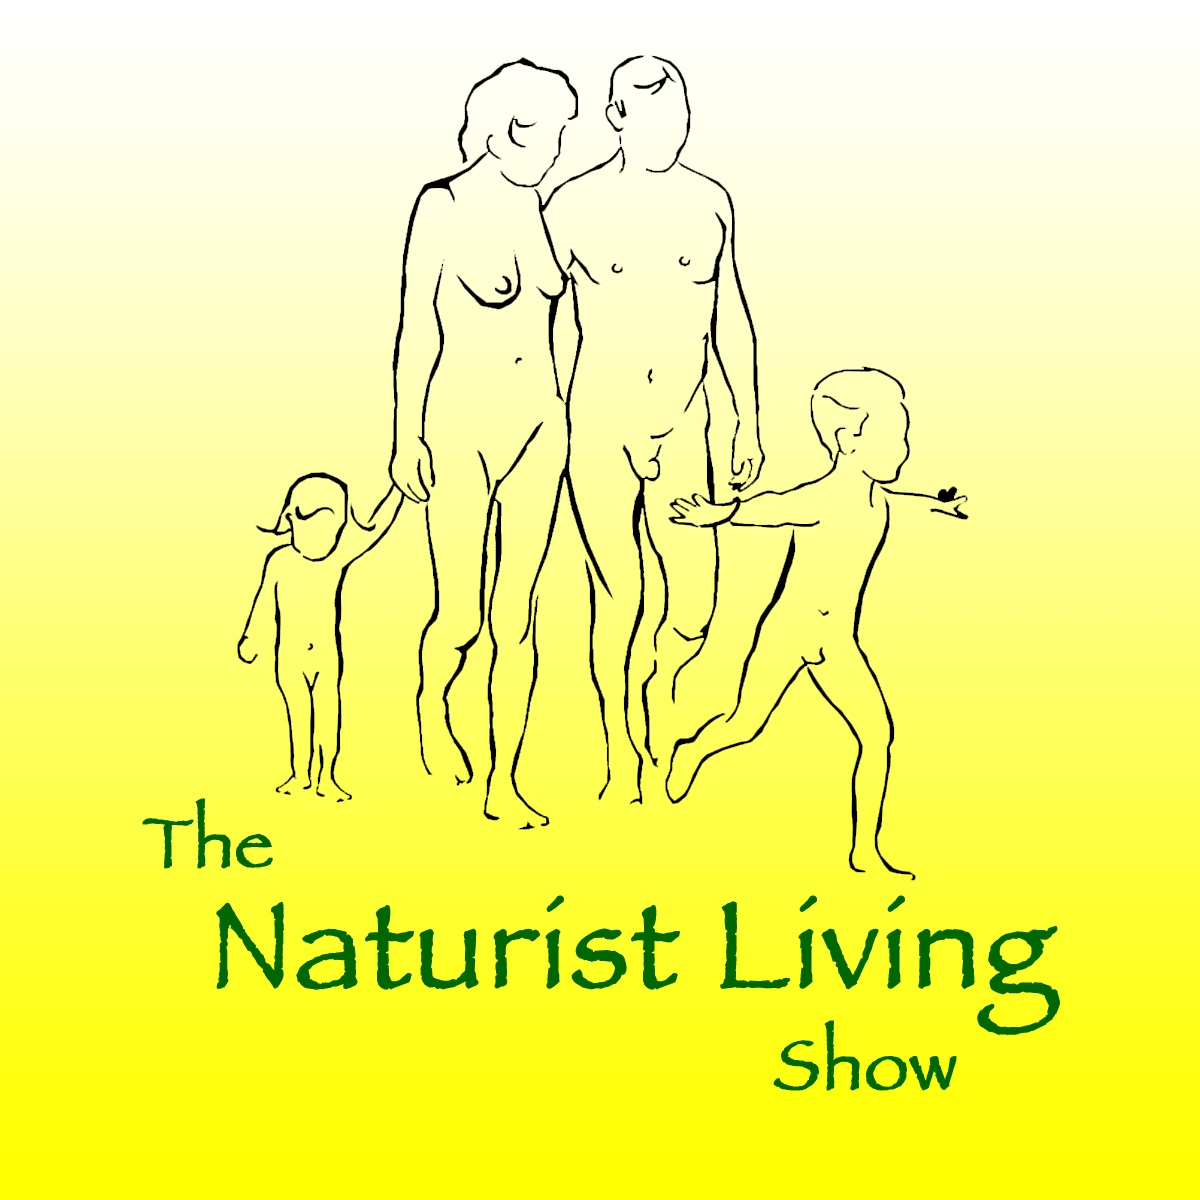 Dating Advice for Naturists